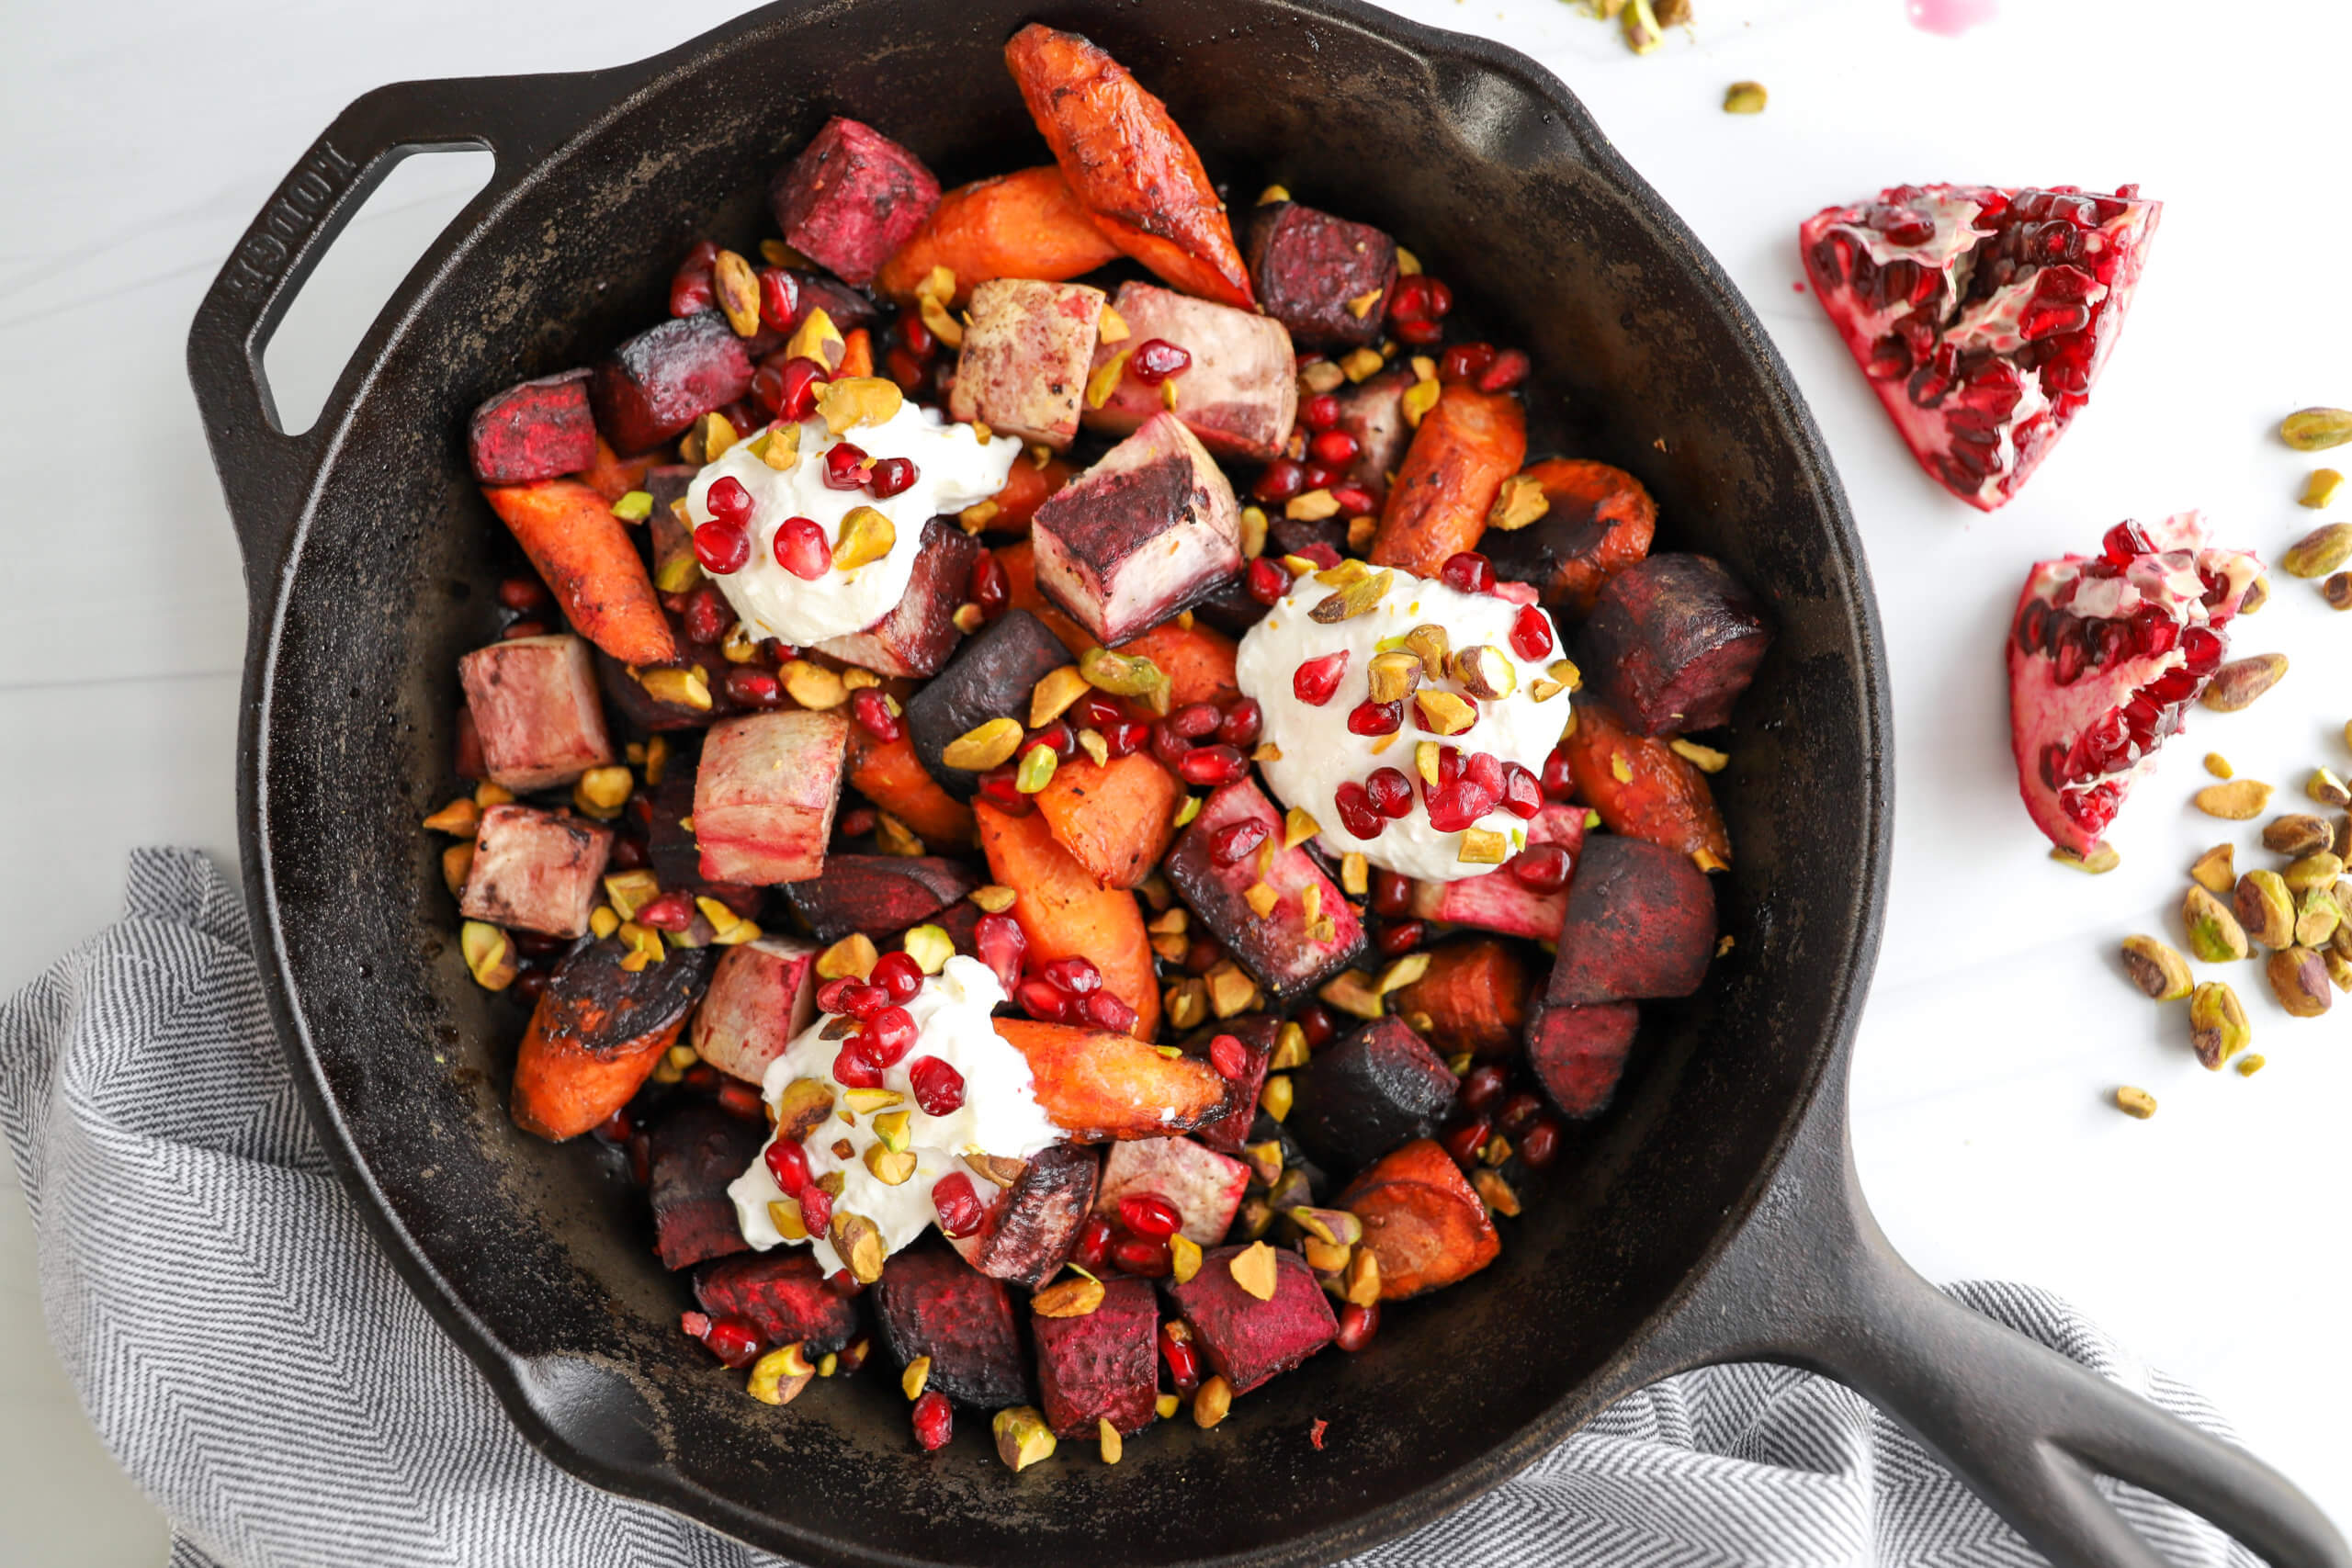 Pomegranate-Glazed Roasted Root Vegetables with Whipped Goat Cheese